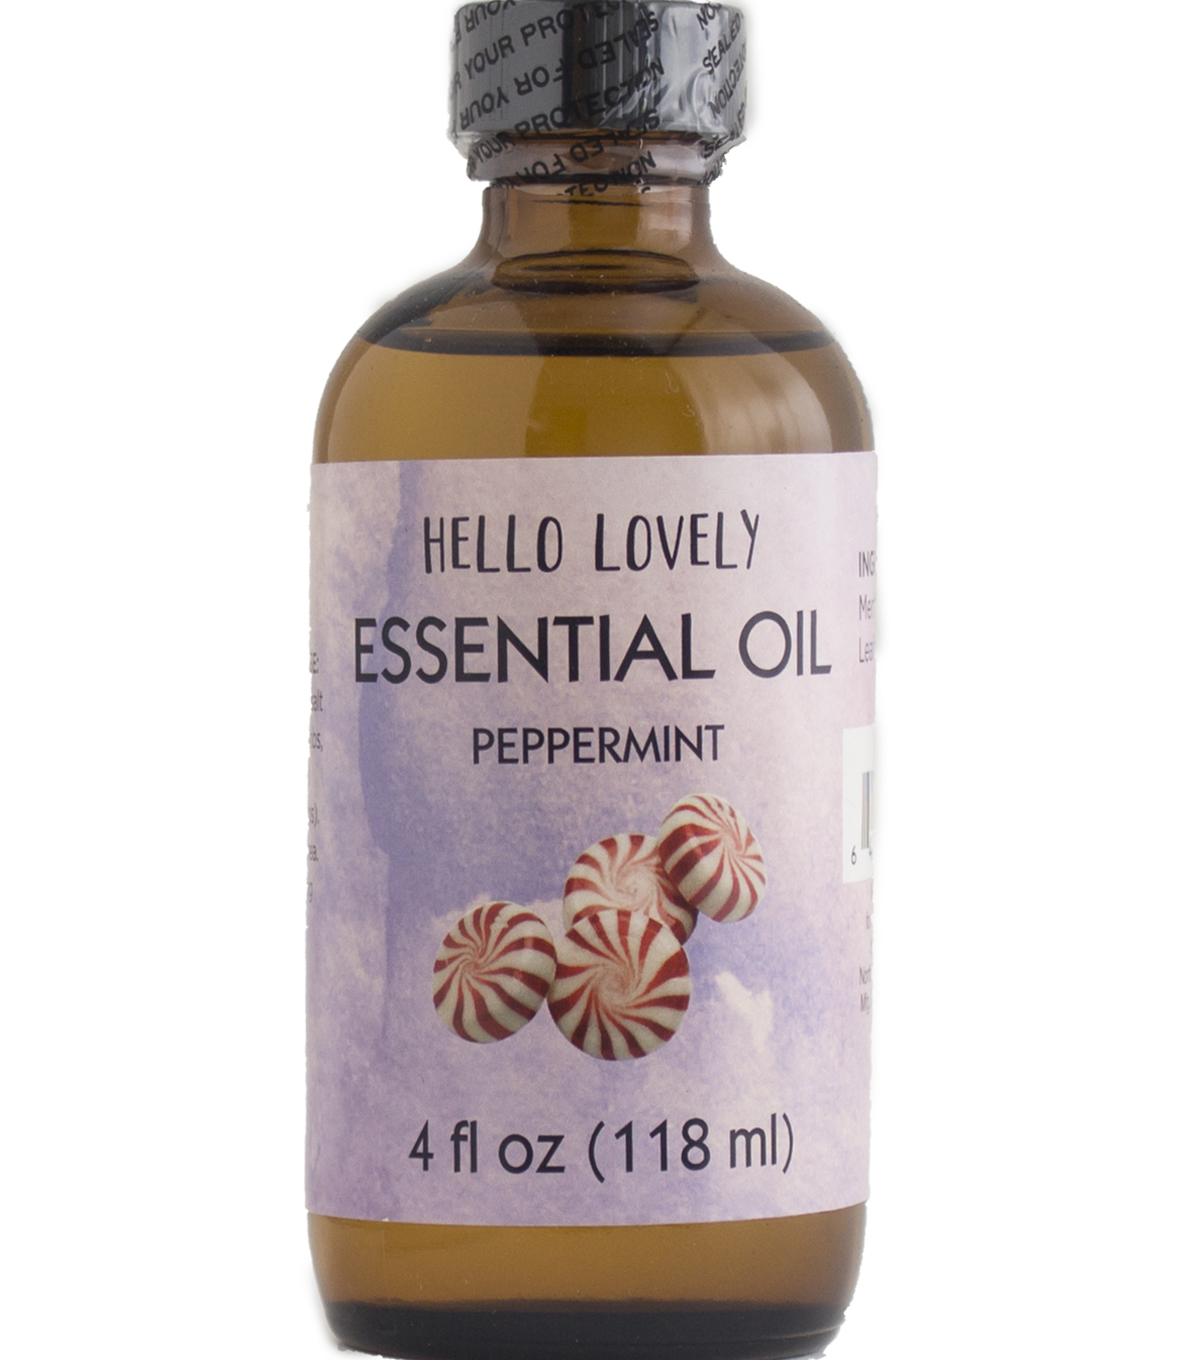 Hello Lovely 4 fl. oz. Peppermint Beauty Essential Oil